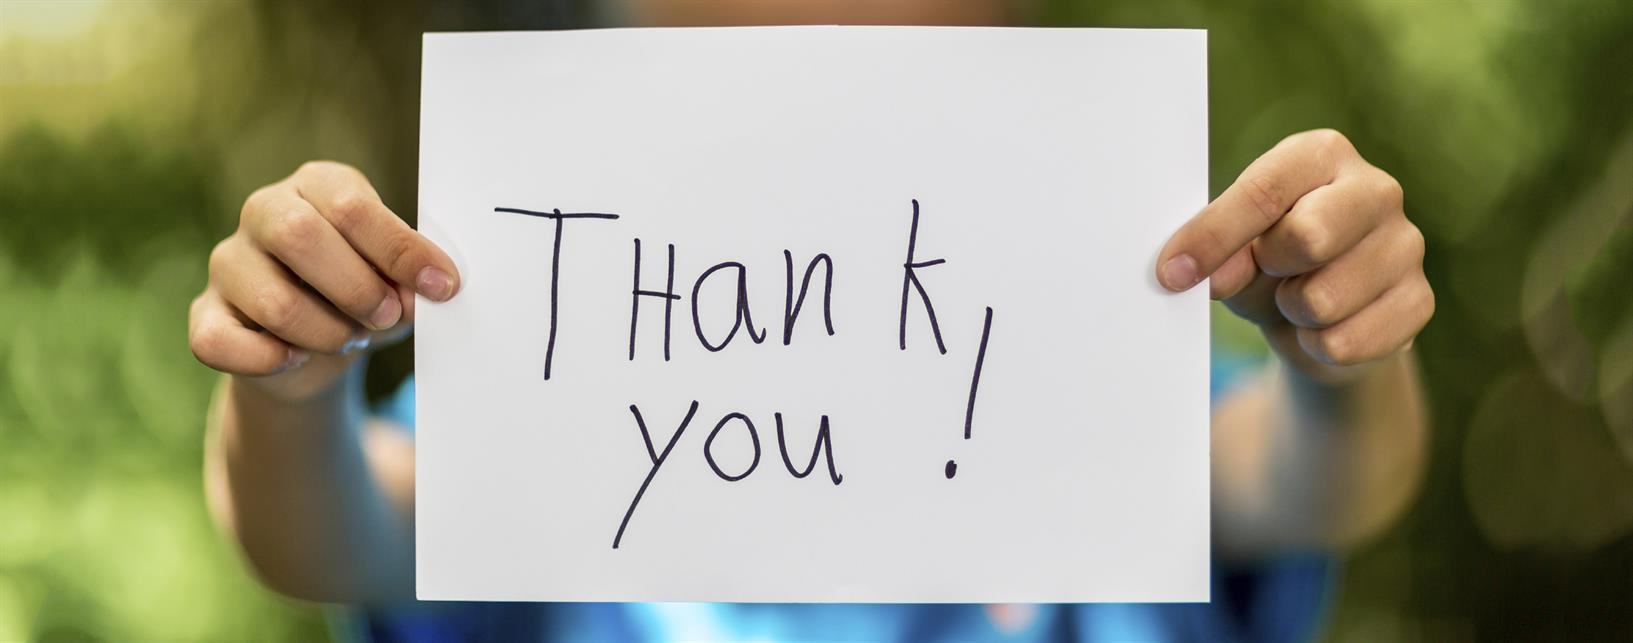 boy_holding_thank_you_sign_topofpage